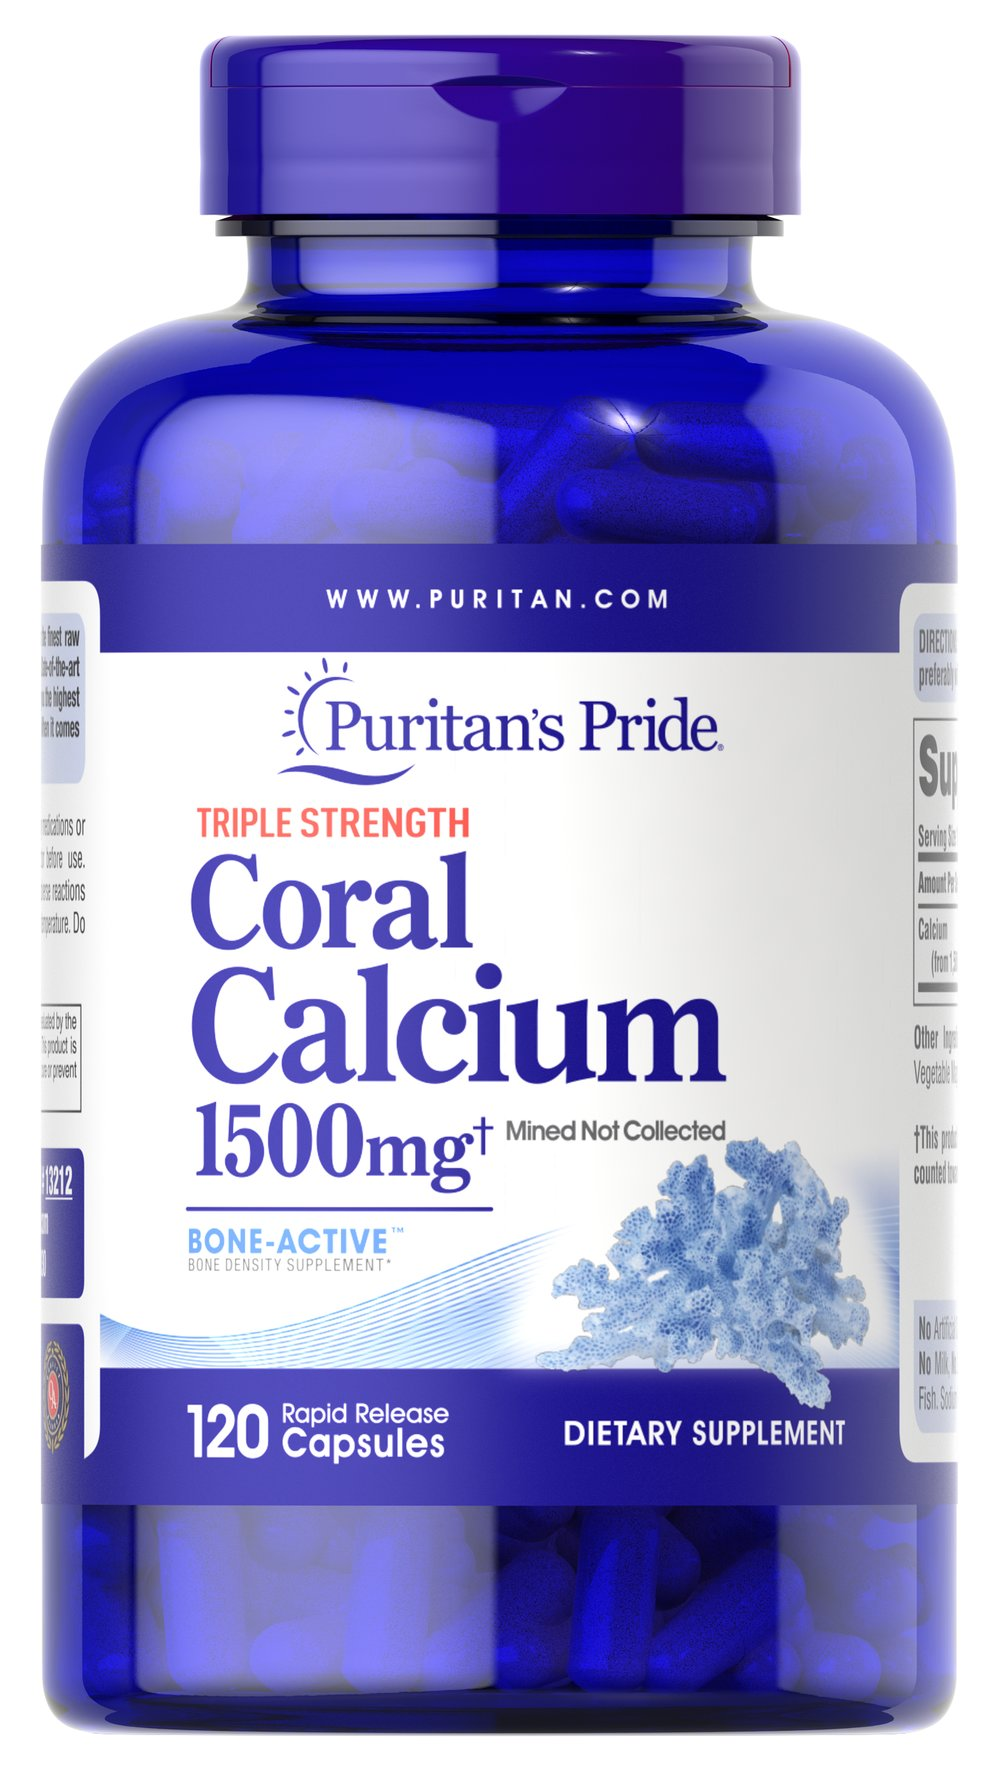 Triple Strength Coral Calcium 1500 mg <p>Our Triple Strength Coral Calcium delivers three times the amount of Calcium (562 mg per capsule — 1500 mg daily when taken as directed). Calcium promotes bone strength and supports heart, nerve and muscle functions.** This Coral Calcium is mined, not collected, from an above ground source  making it environmentally friendly.</p> 120 Capsules 1500 mg $44.99